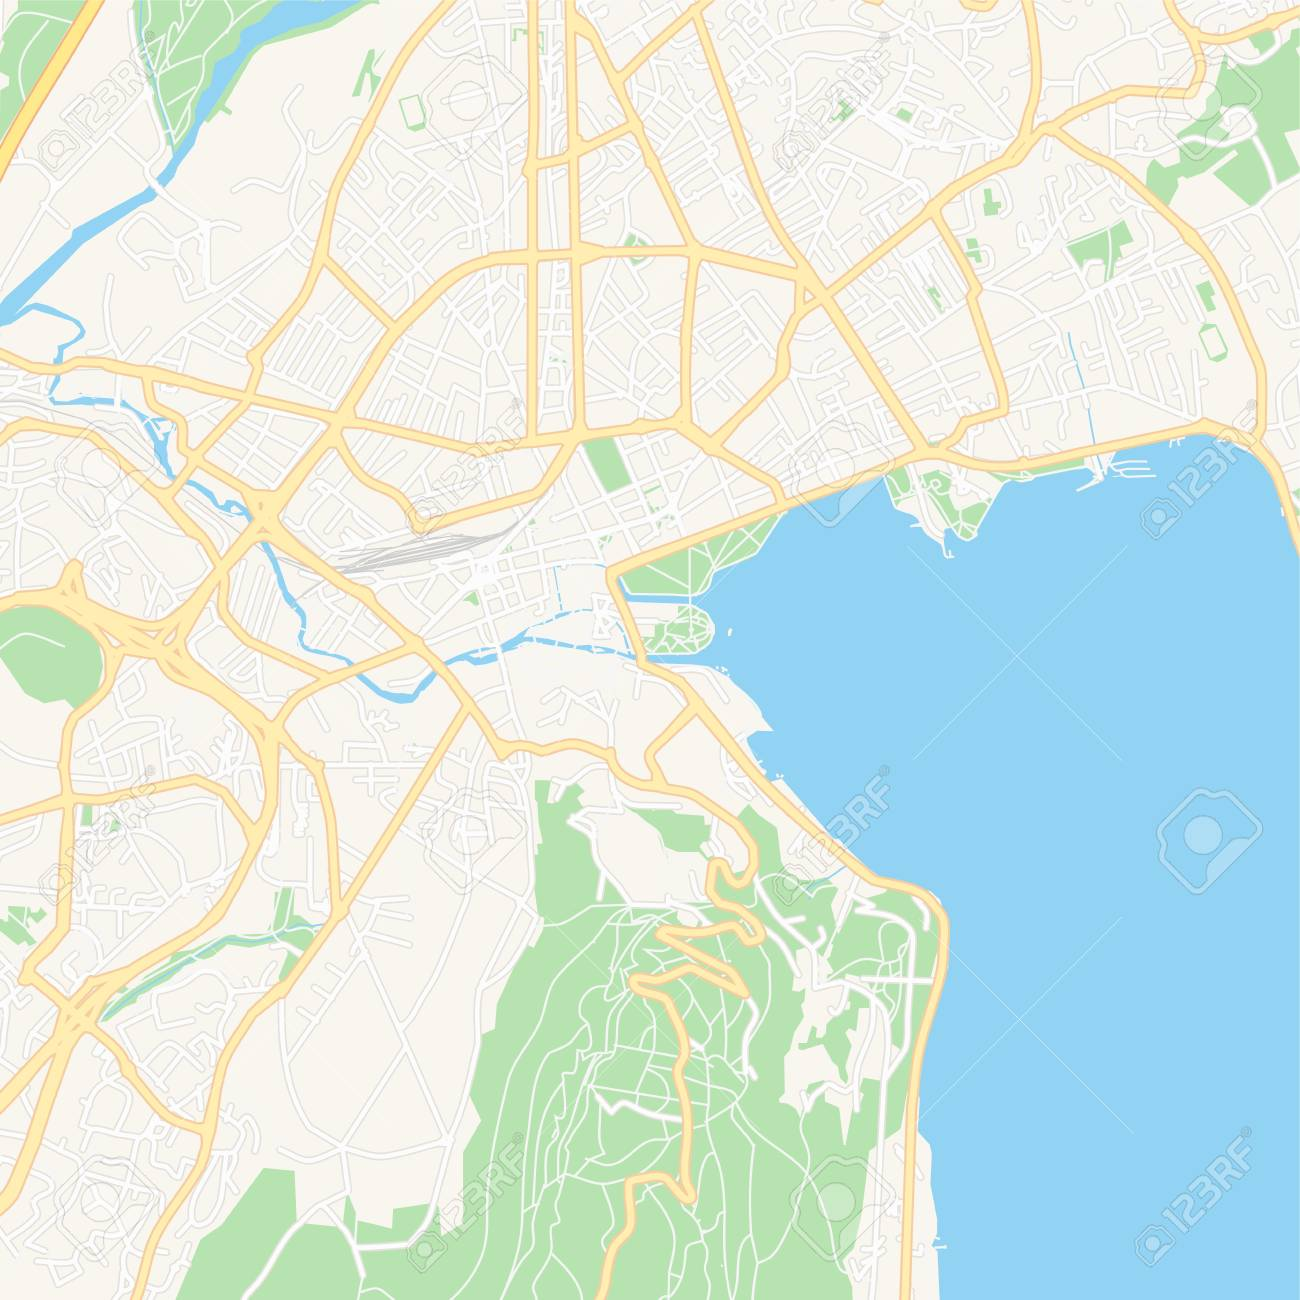 graphic regarding Printable Map of France known as Printable map of Annecy, France with principal and secondary streets..